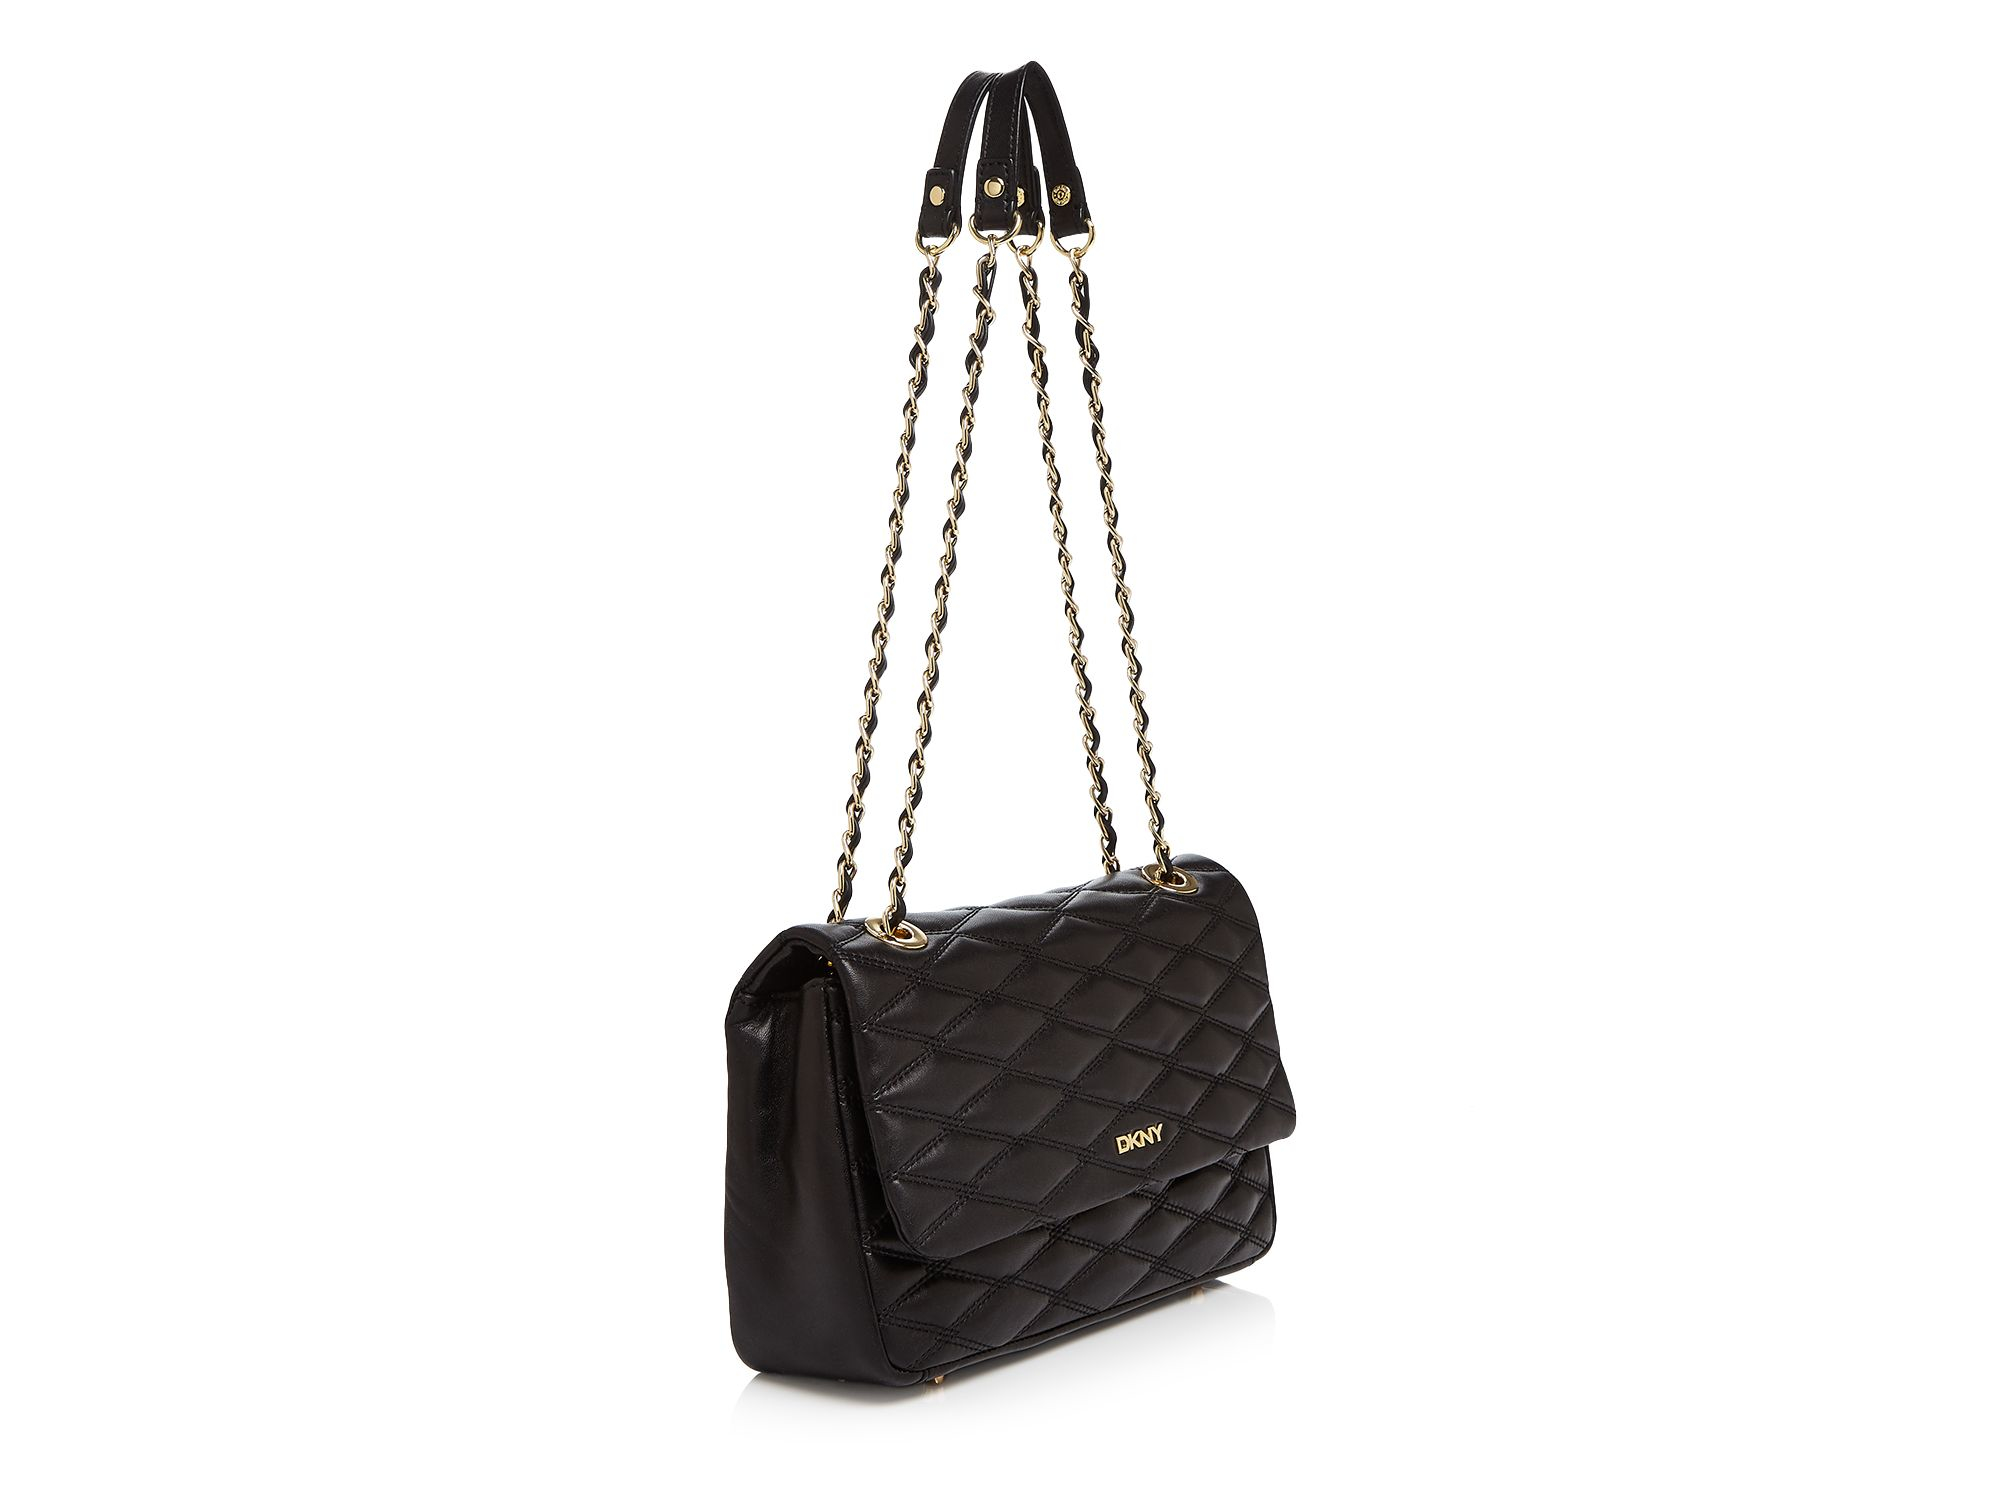 Quilted Shoulder Bag In Dkny Lyst Black Flap bf76gy